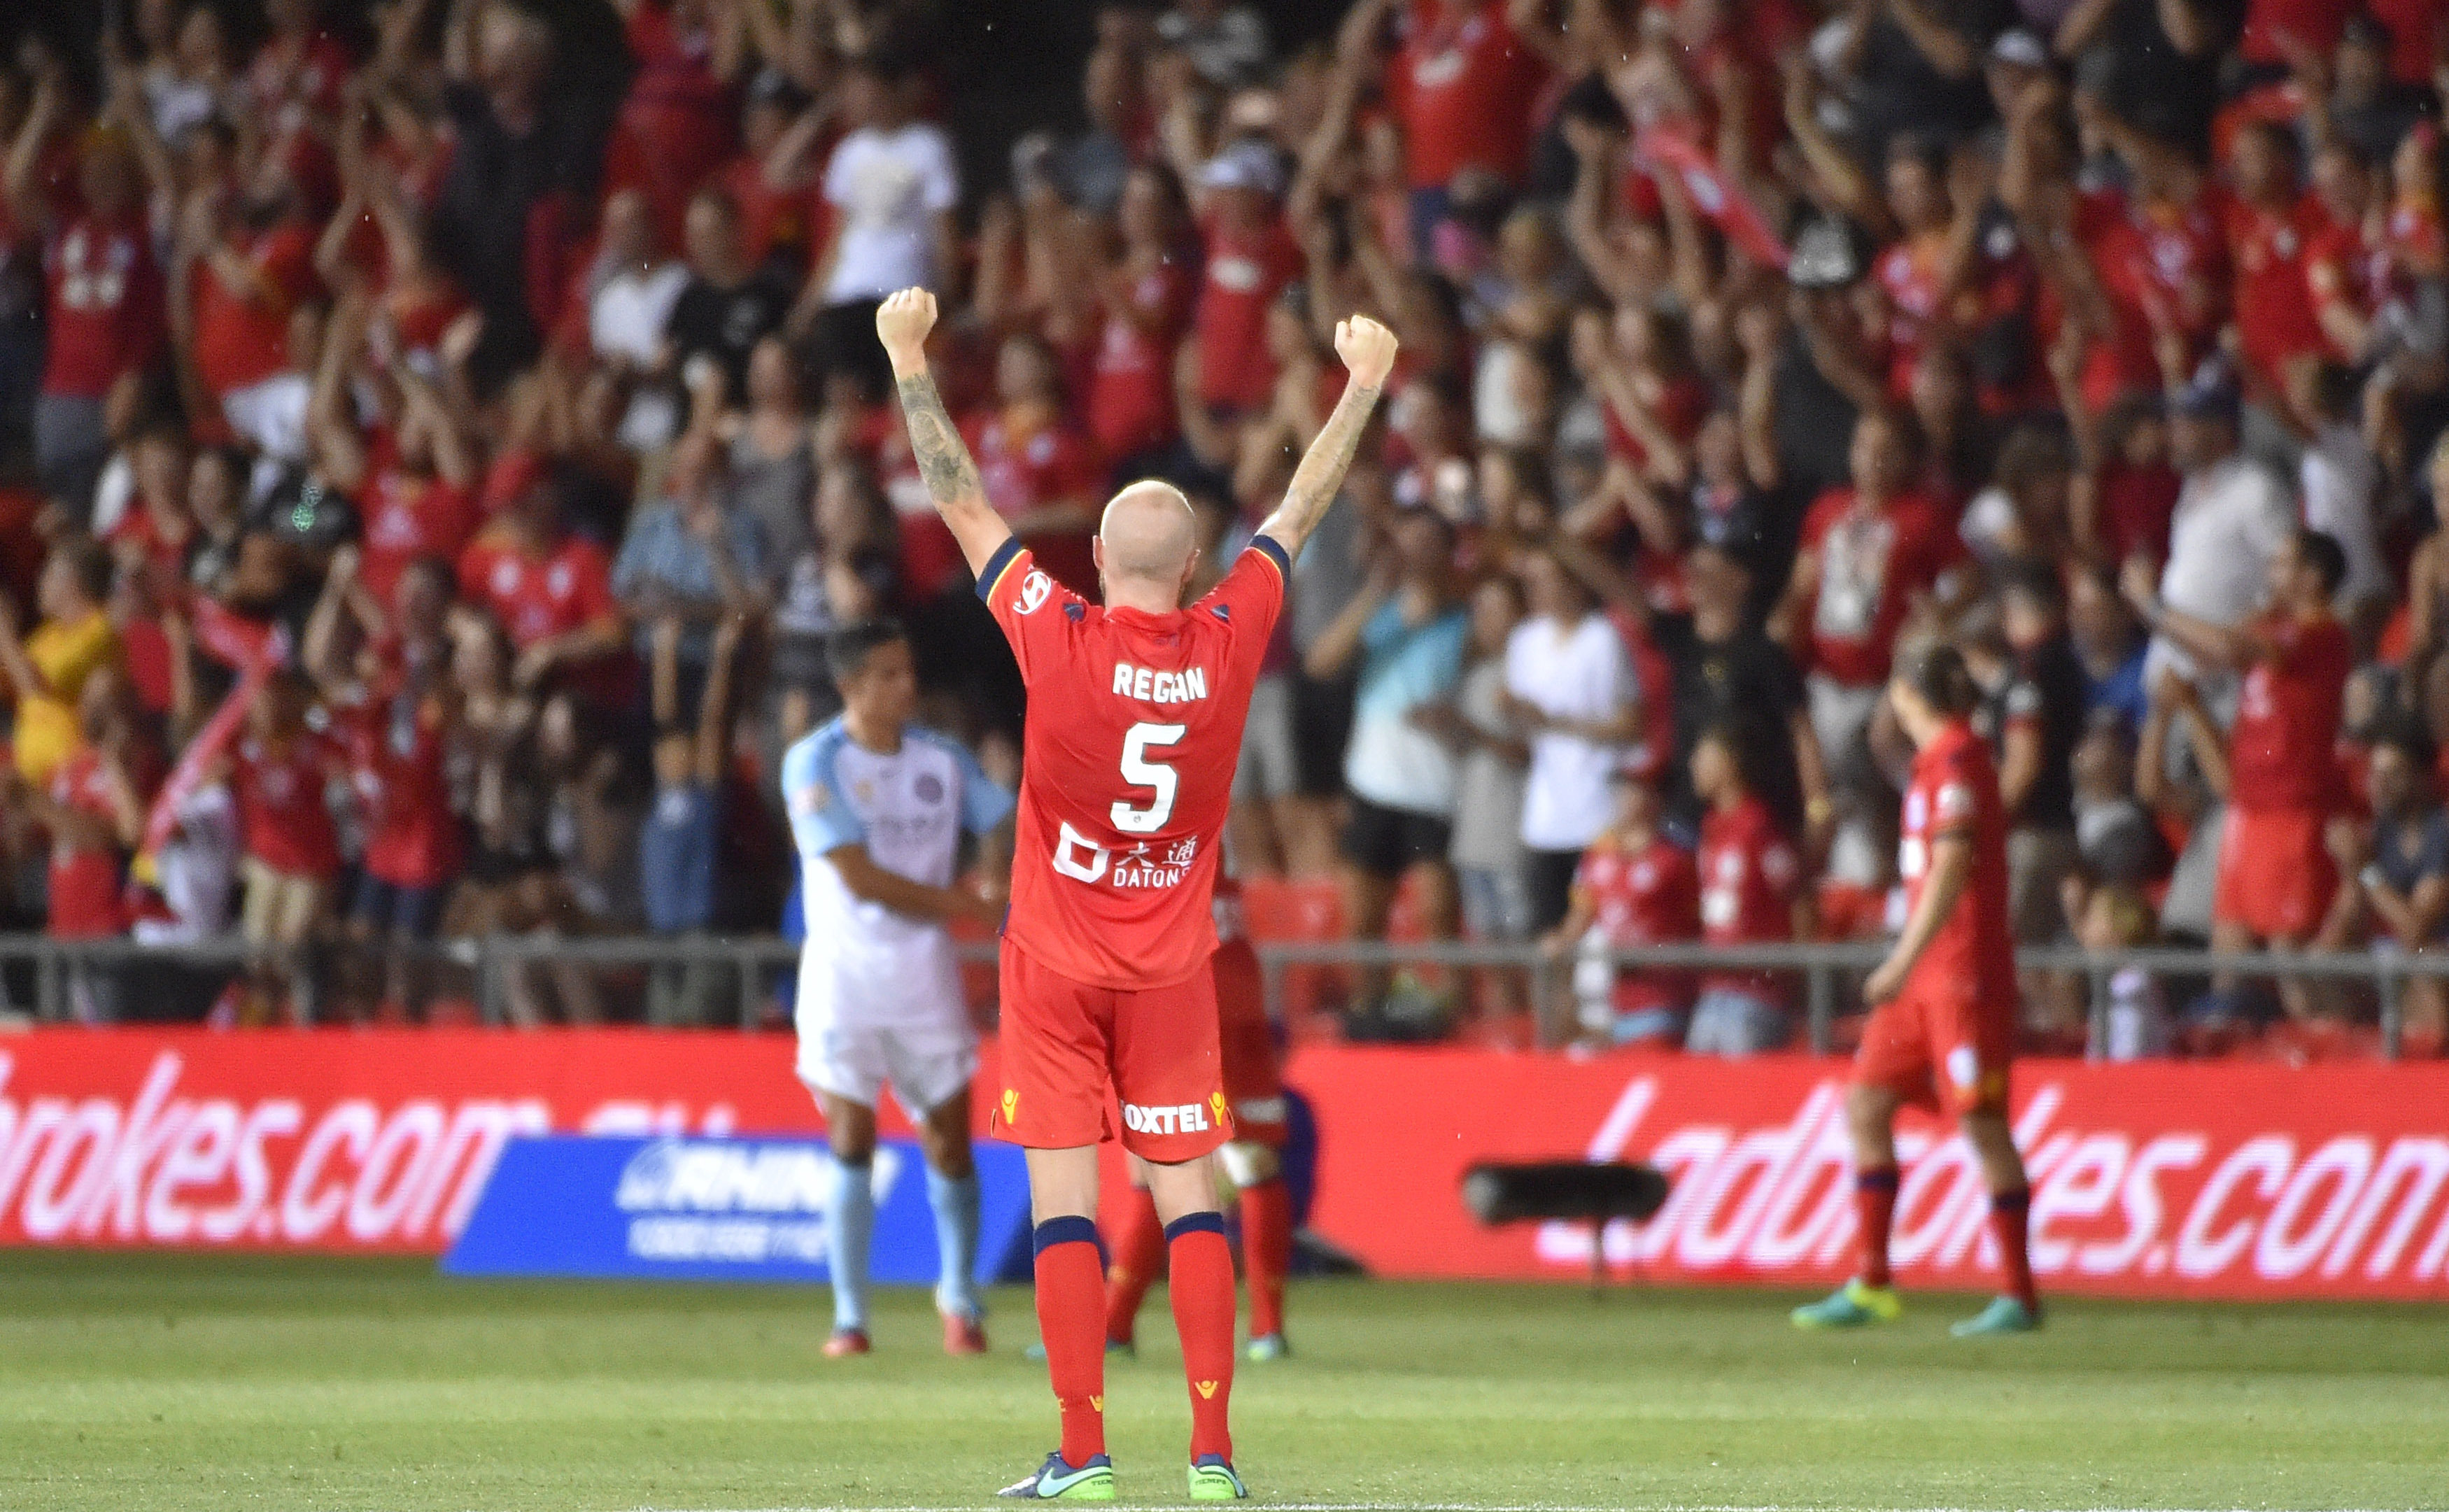 Taylor Regan raises his fists to the crowd after the Reds' breakthrough win against Melbourne City. Photo: David Mariuz / AAP